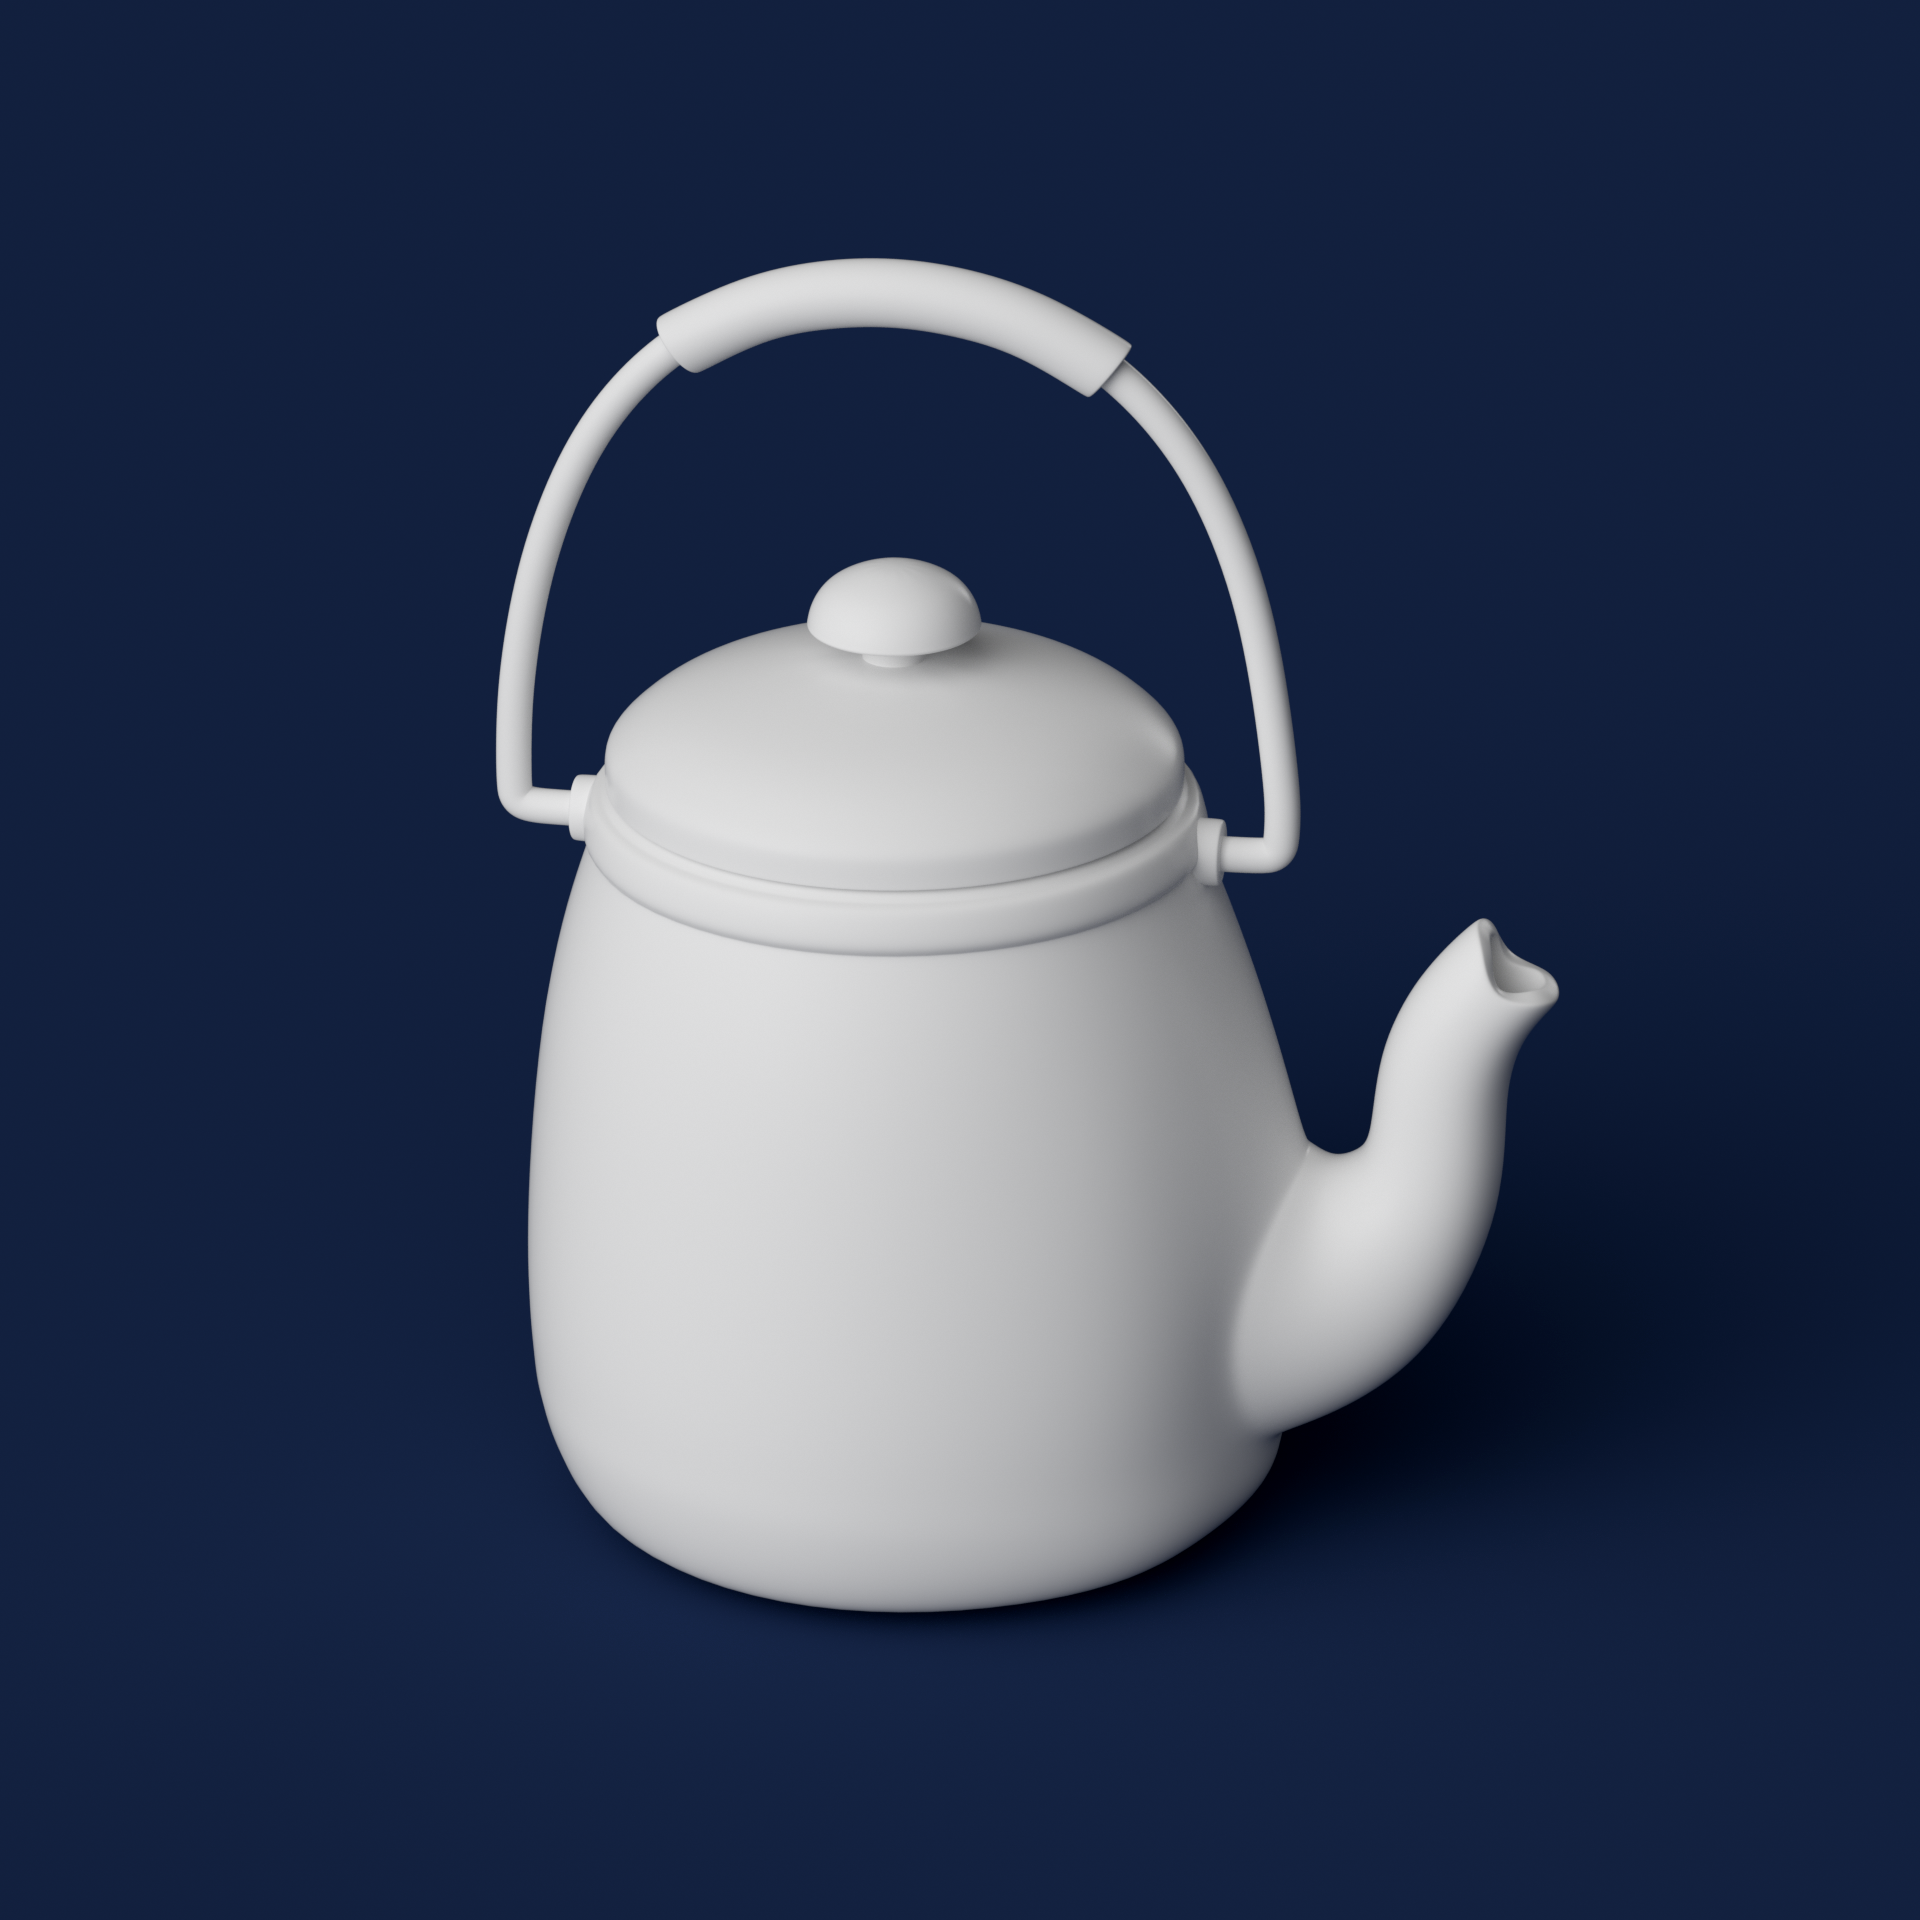 kettle.png